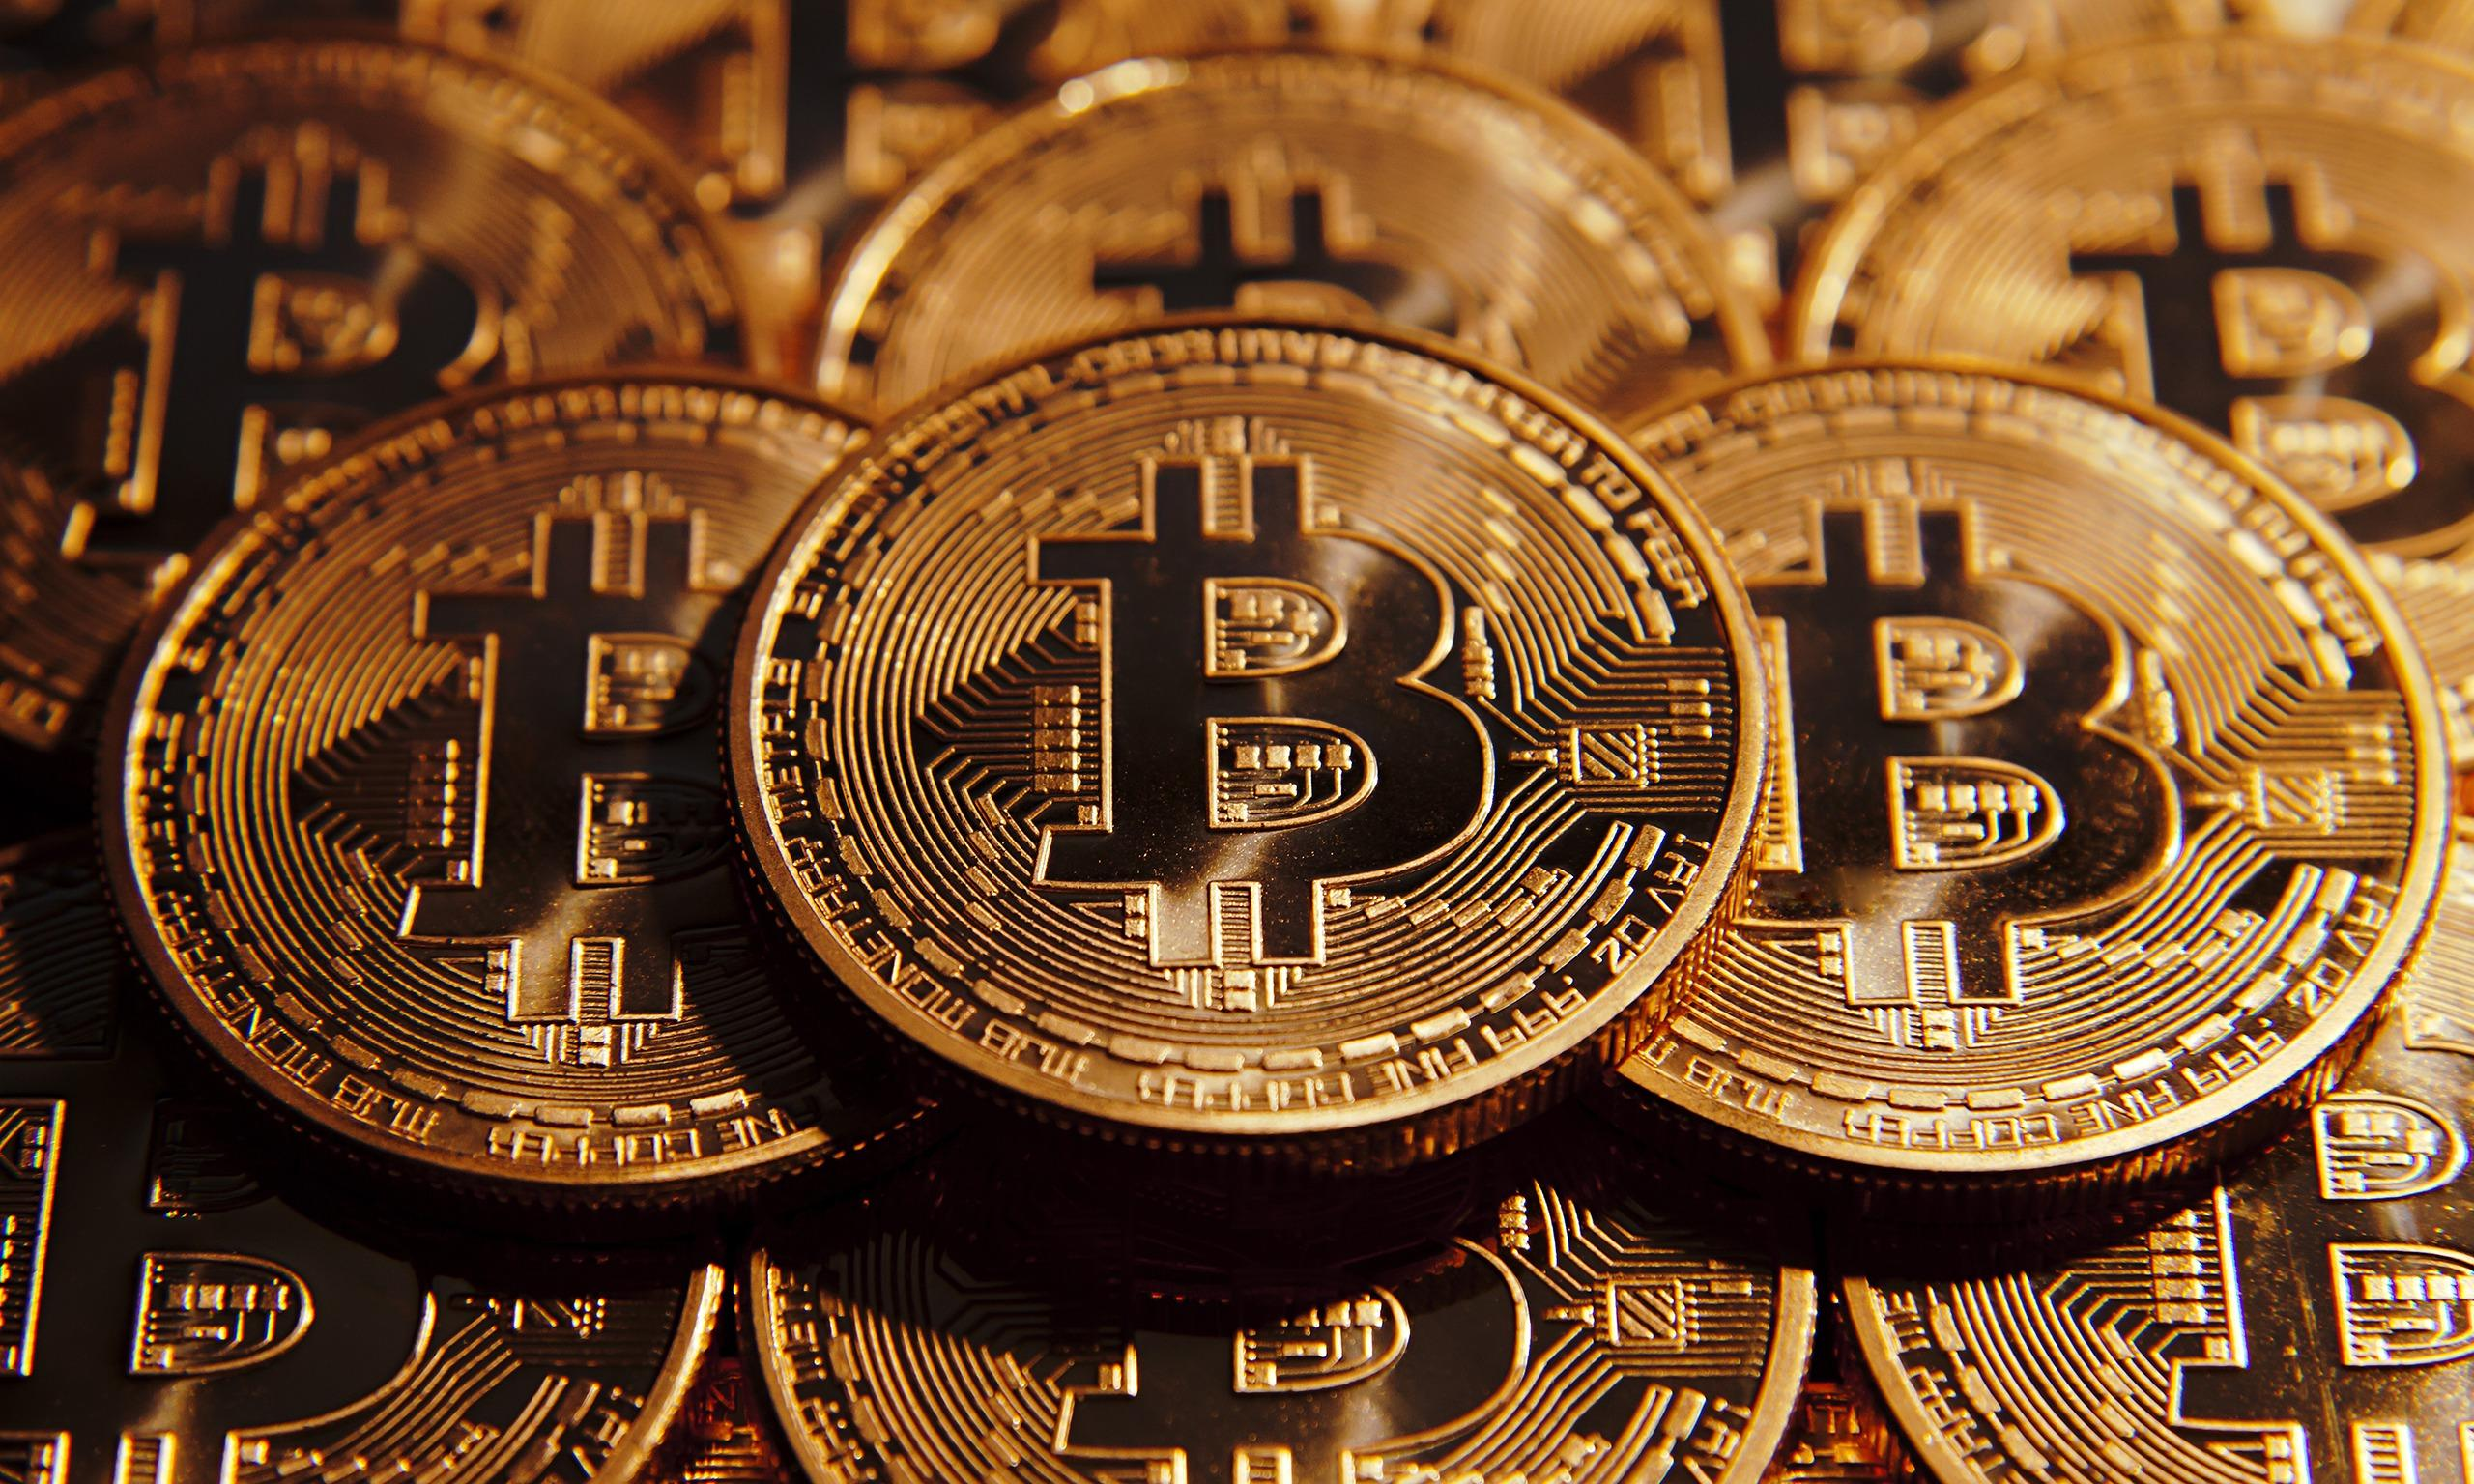 Bitcoin series 5 altcoins and forks winklevoss bitcoin trust the present article will delve into what altcoins and forks are and what they imply ccuart Choice Image